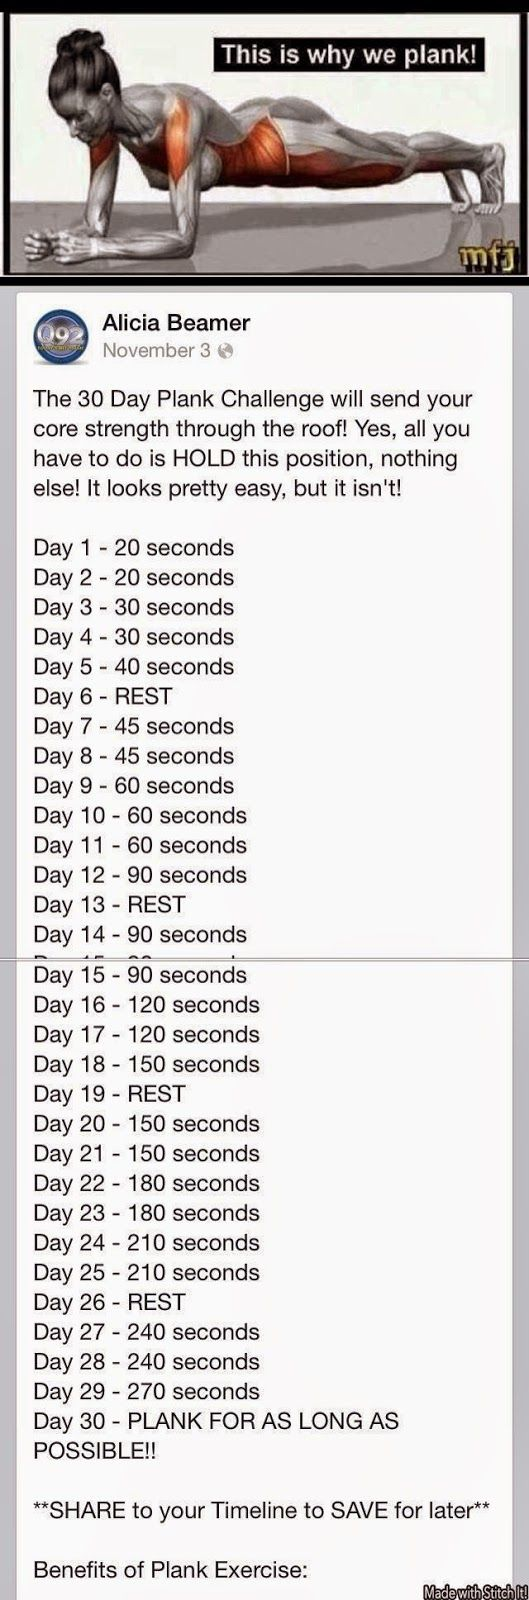 This is why we plank! 30 day challenge. This is the BEST for toning and stregthenning my core.